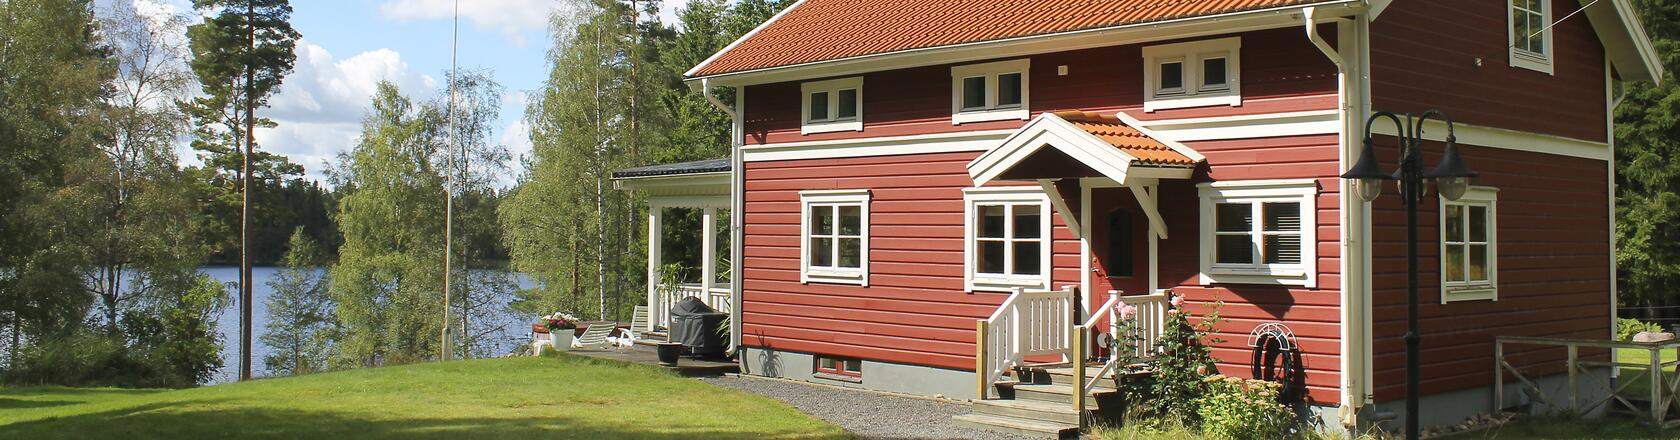 Sävsjö in Sweden — Rent a holiday home with DanCenter